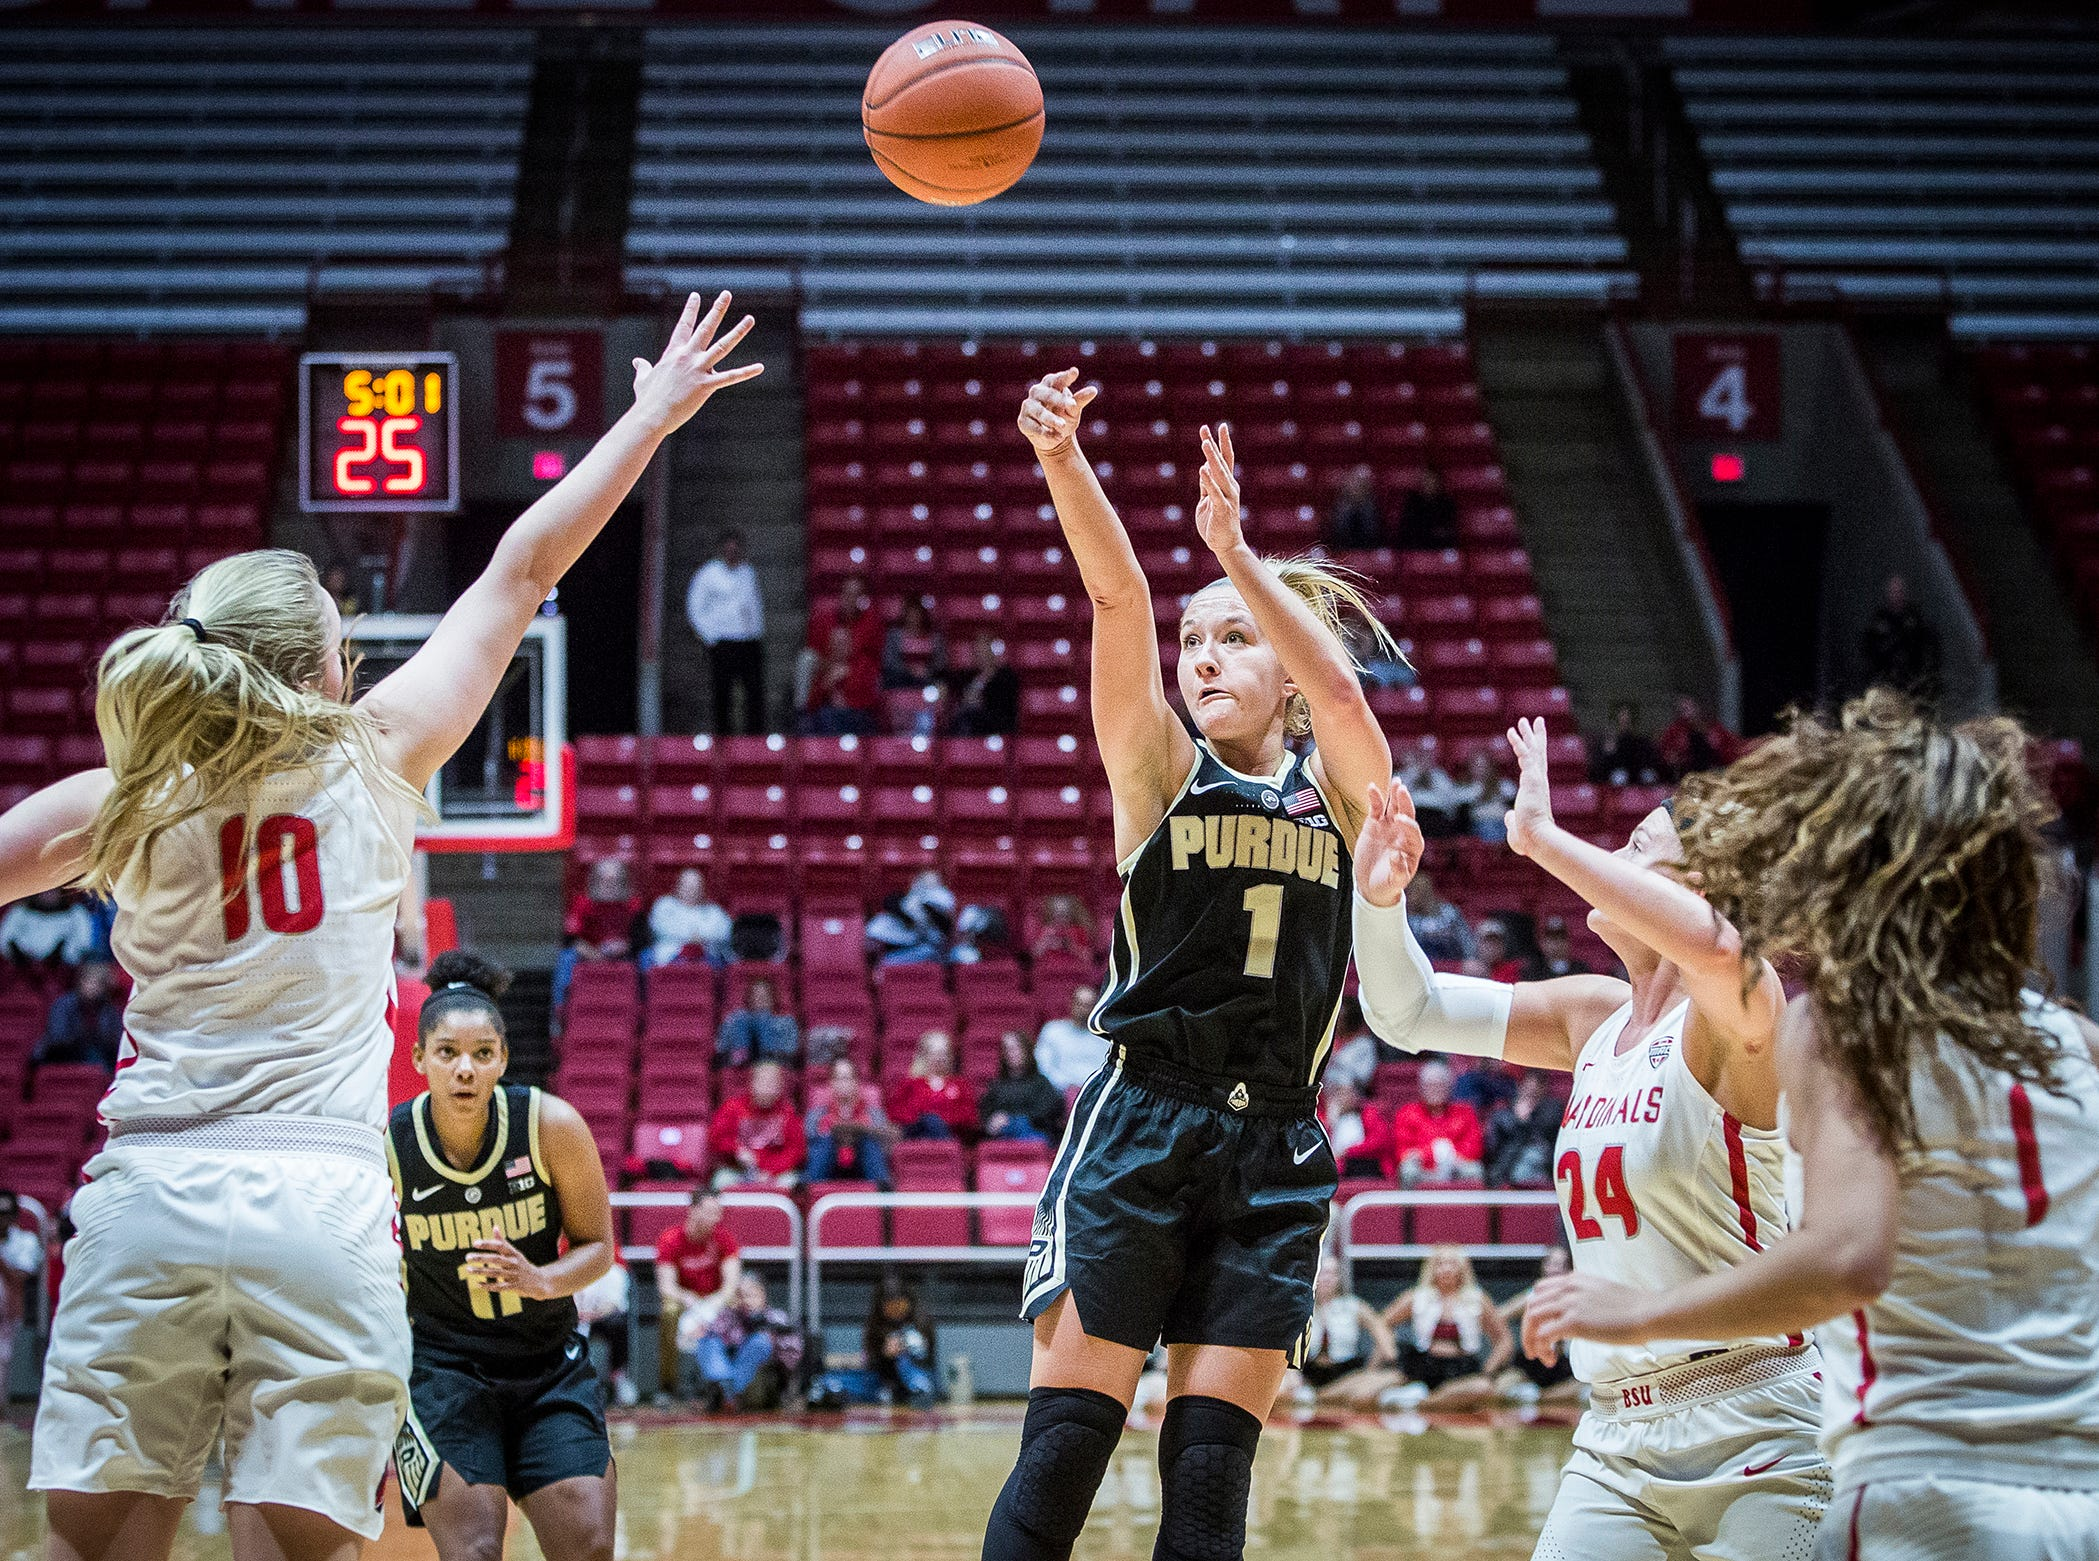 Purdue's Abi Haynes shoots past Ball State's defense during their game at Worthen Arena Wednesday, Nov. 7, 2018.